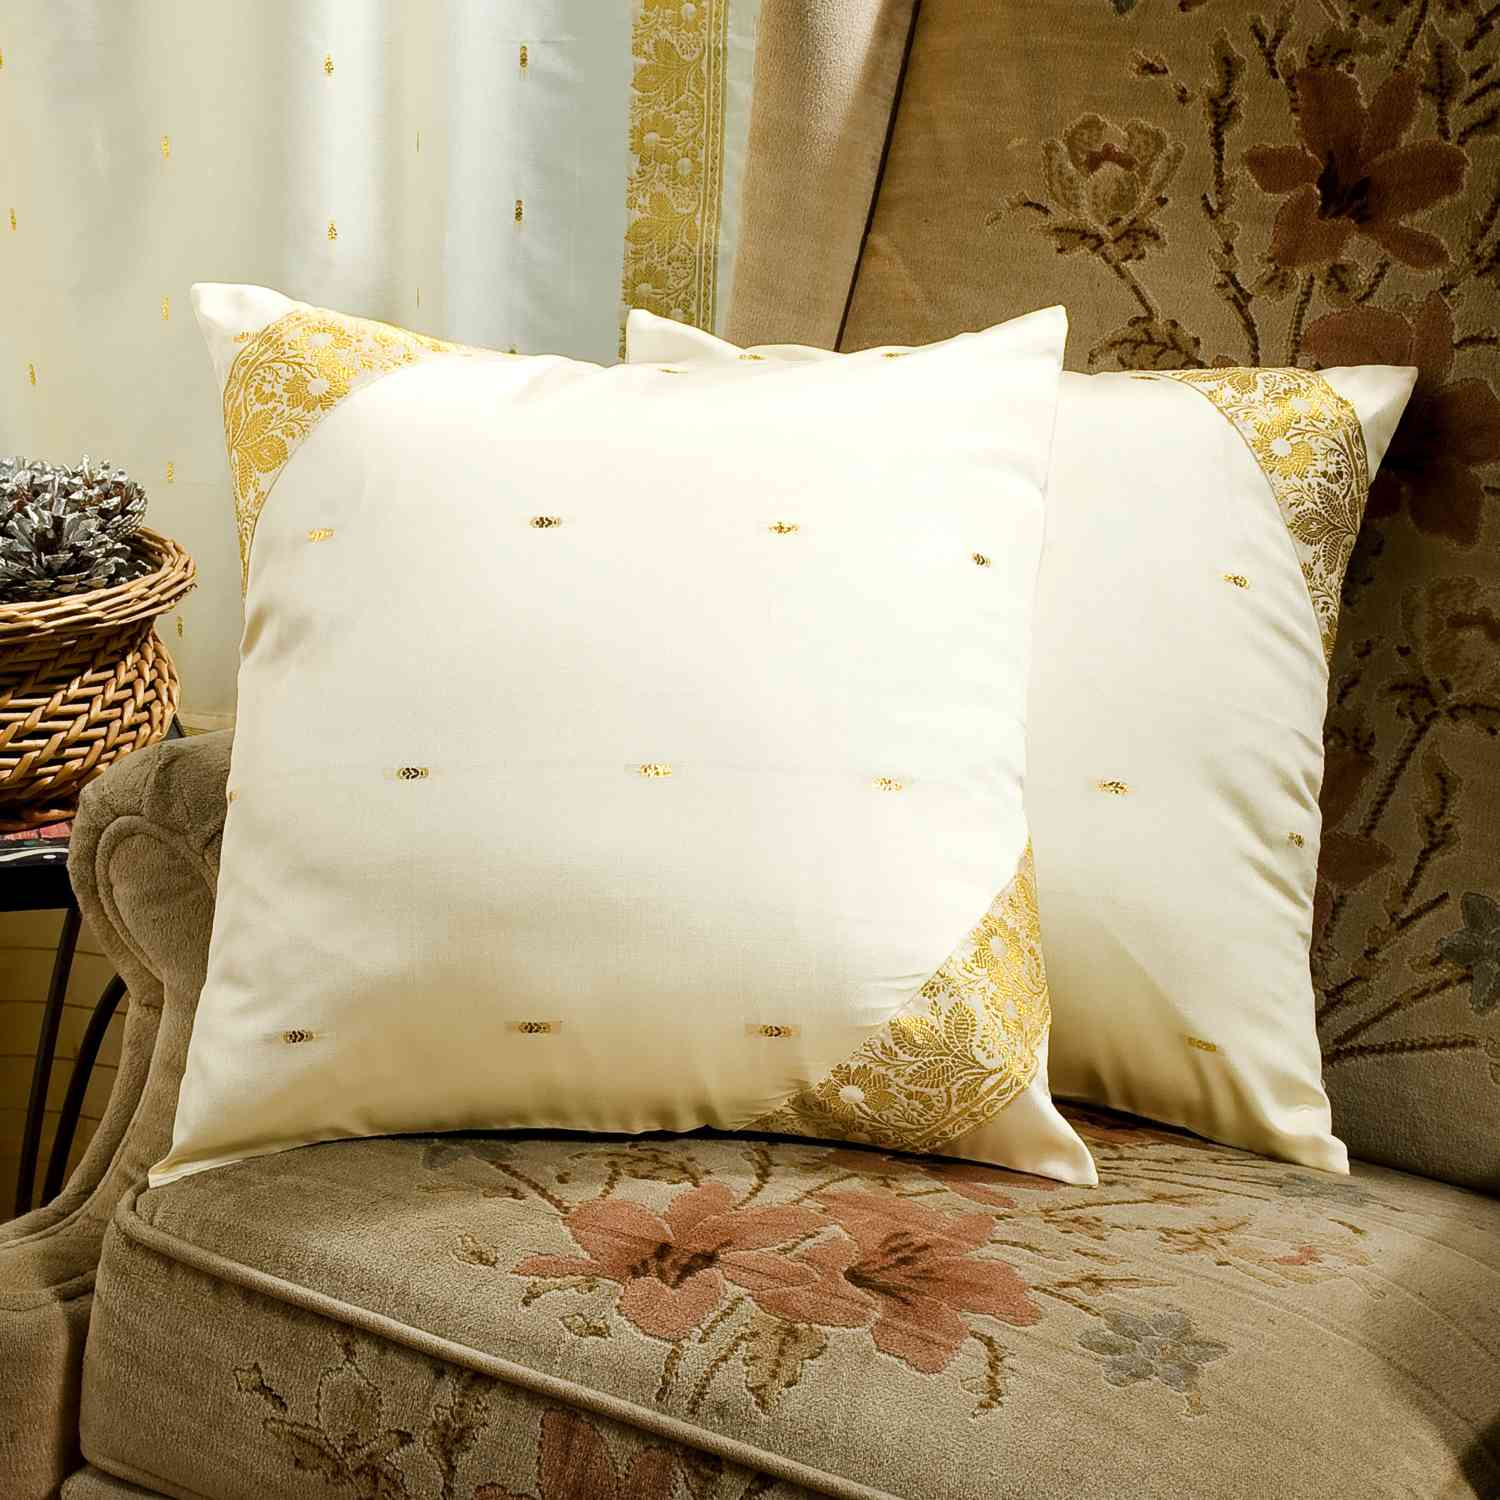 cream colored sofa pillows baker furniture neue decorative handcrafted cushion cover throw pillow